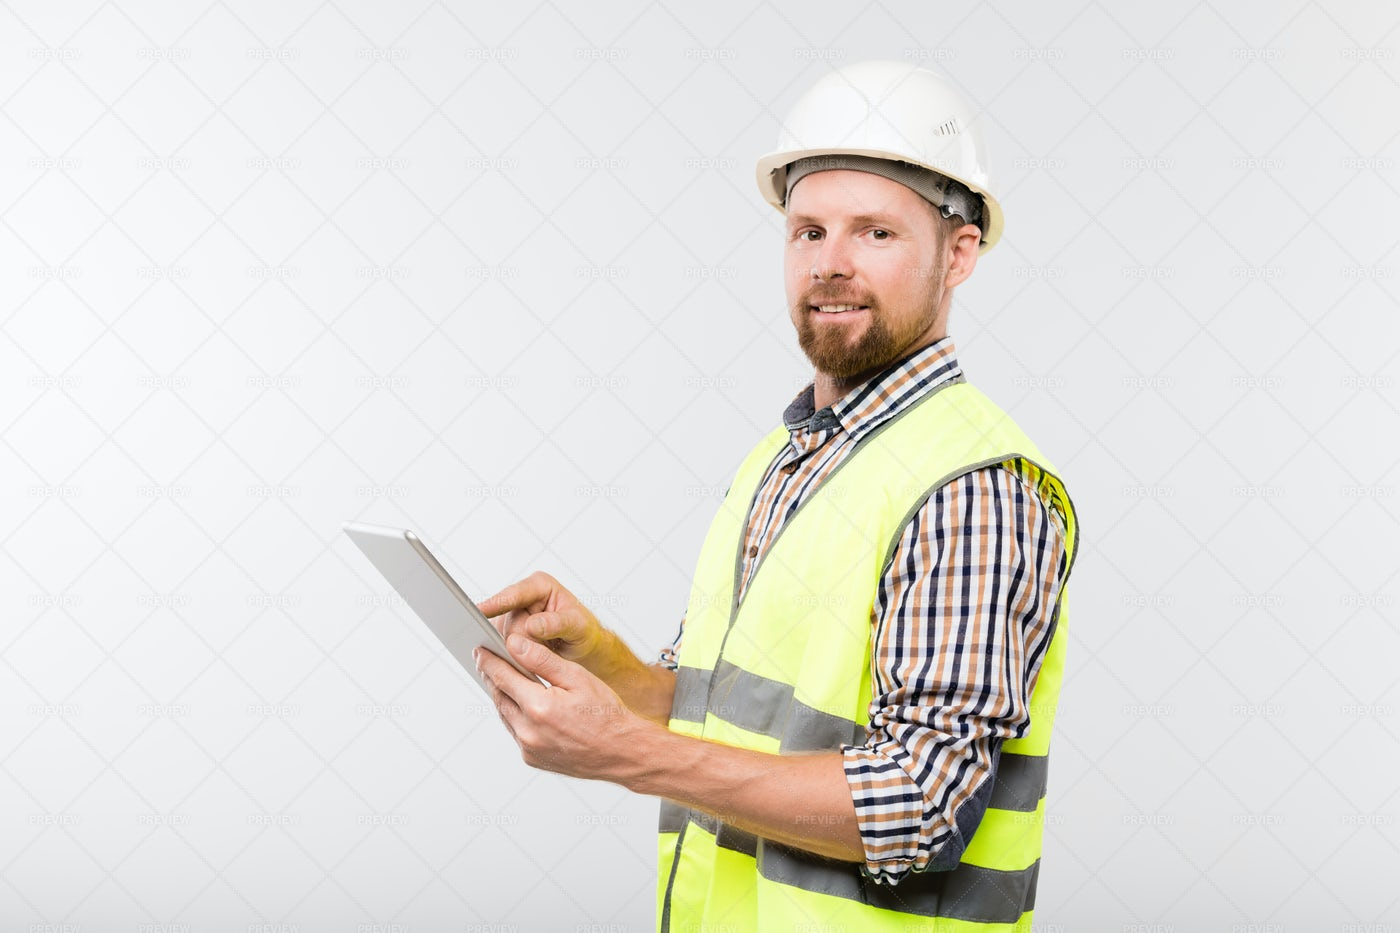 Young Successful Builder In White...: Stock Photos